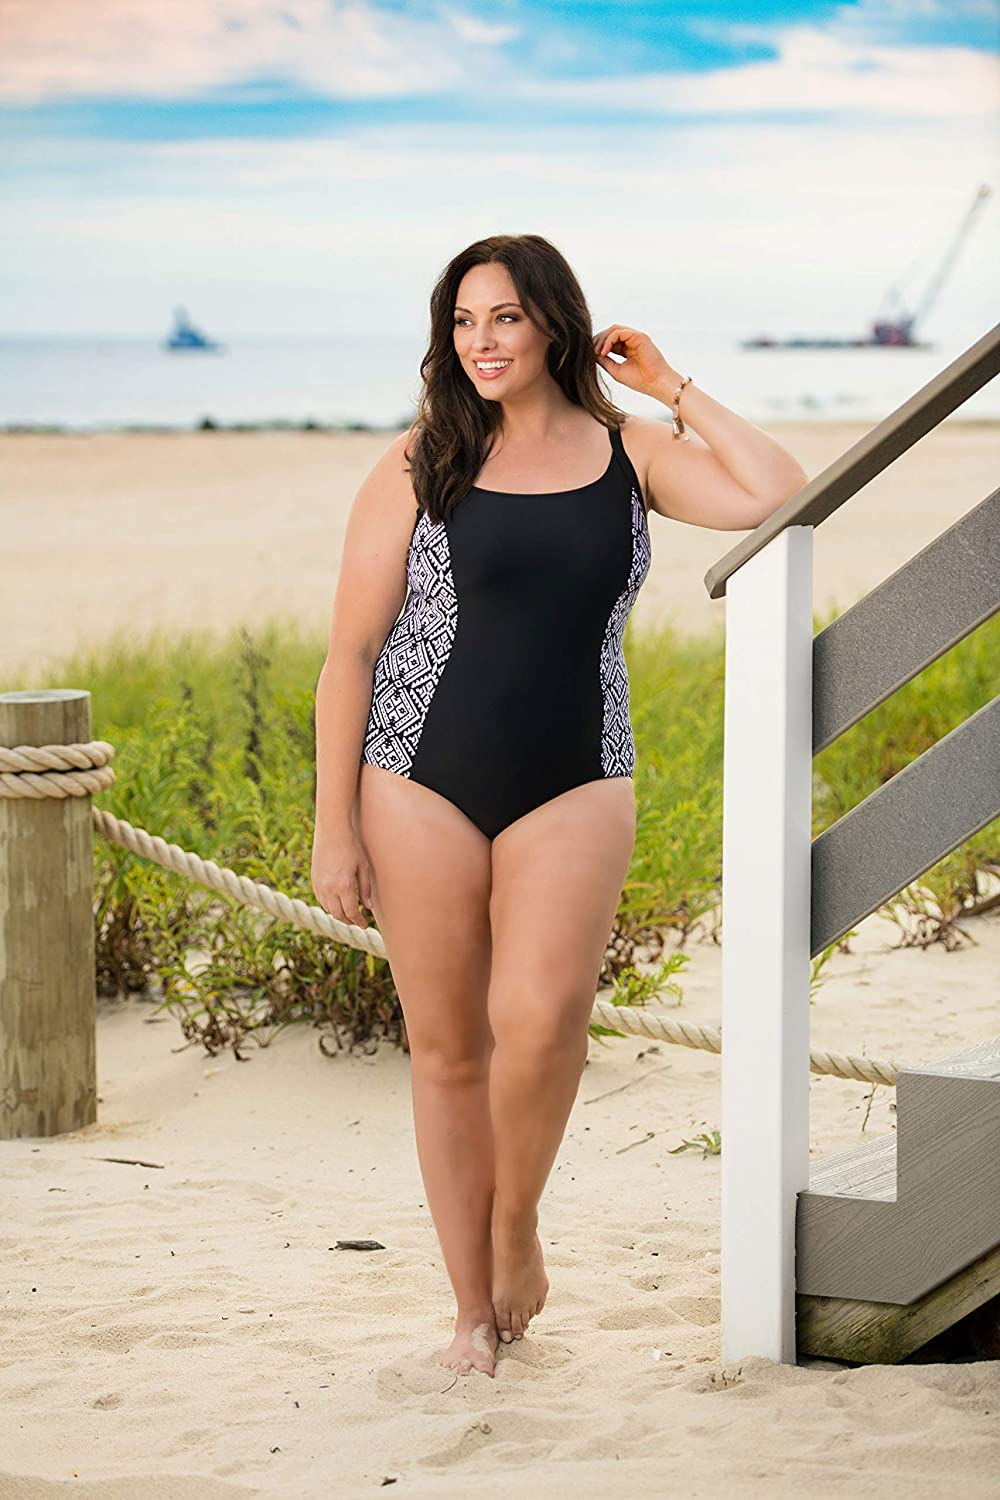 Caribbean Sand Panel Plus Size One Piece Swimsuit for Women with Tummy Control